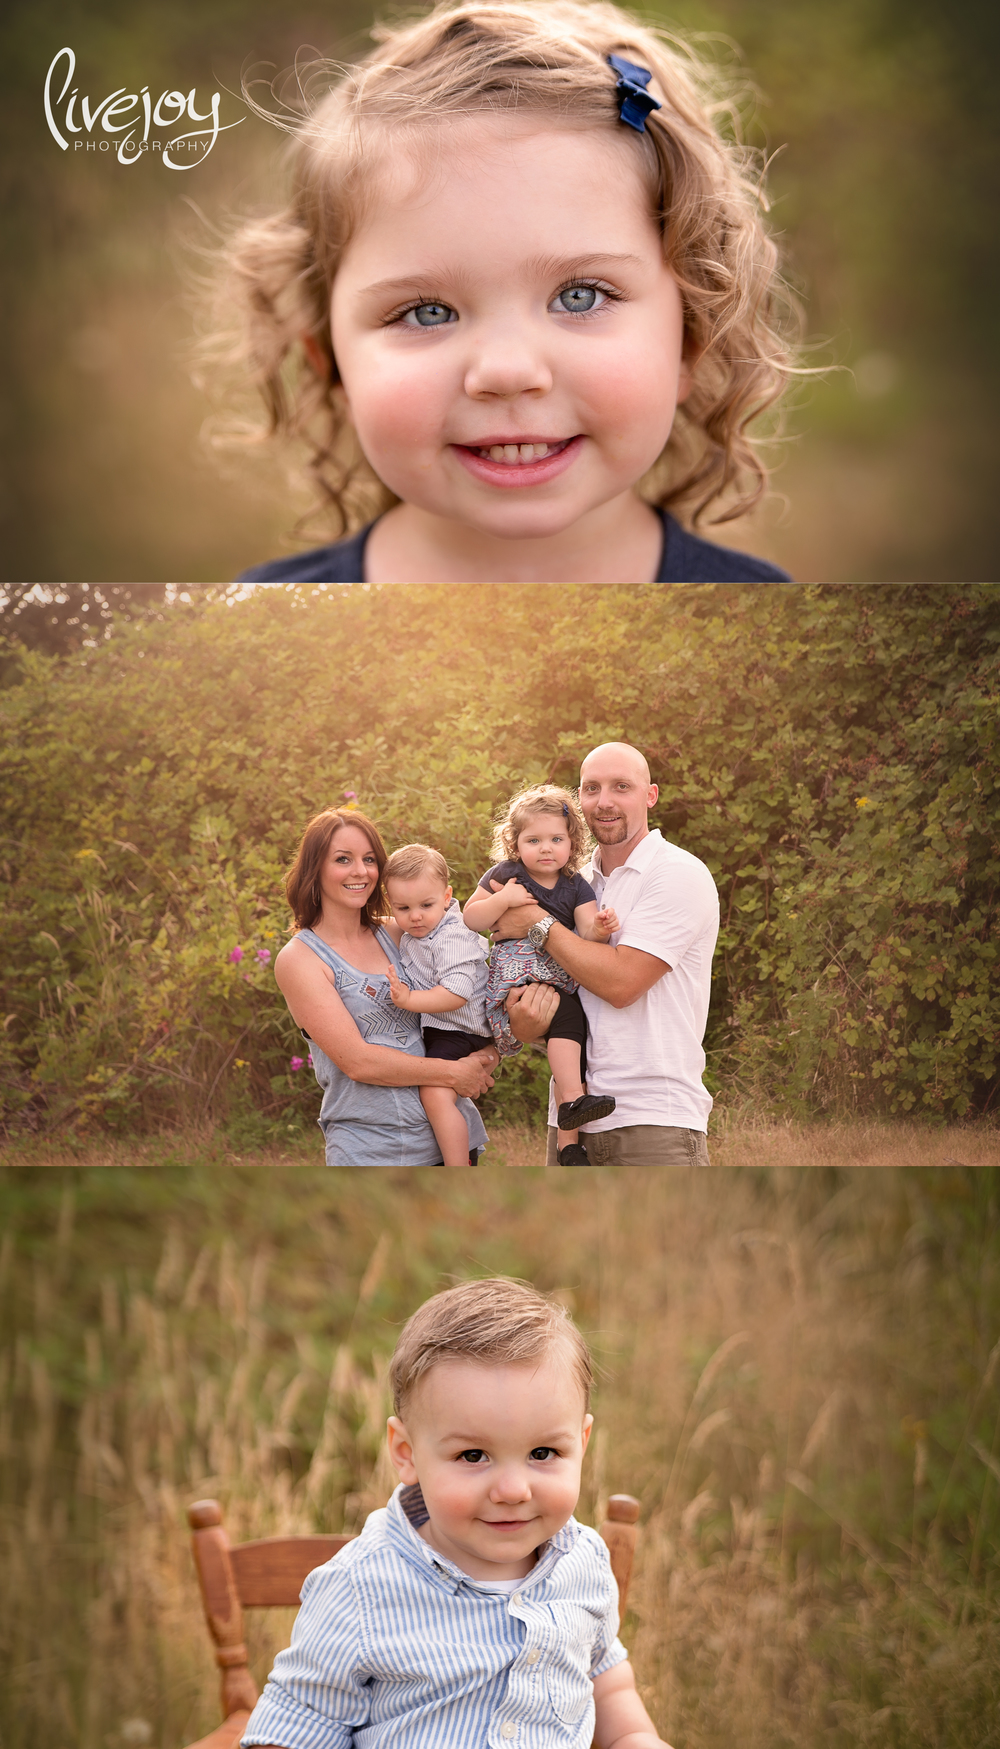 Family Photography Session | Oregon | LiveJoy Photography